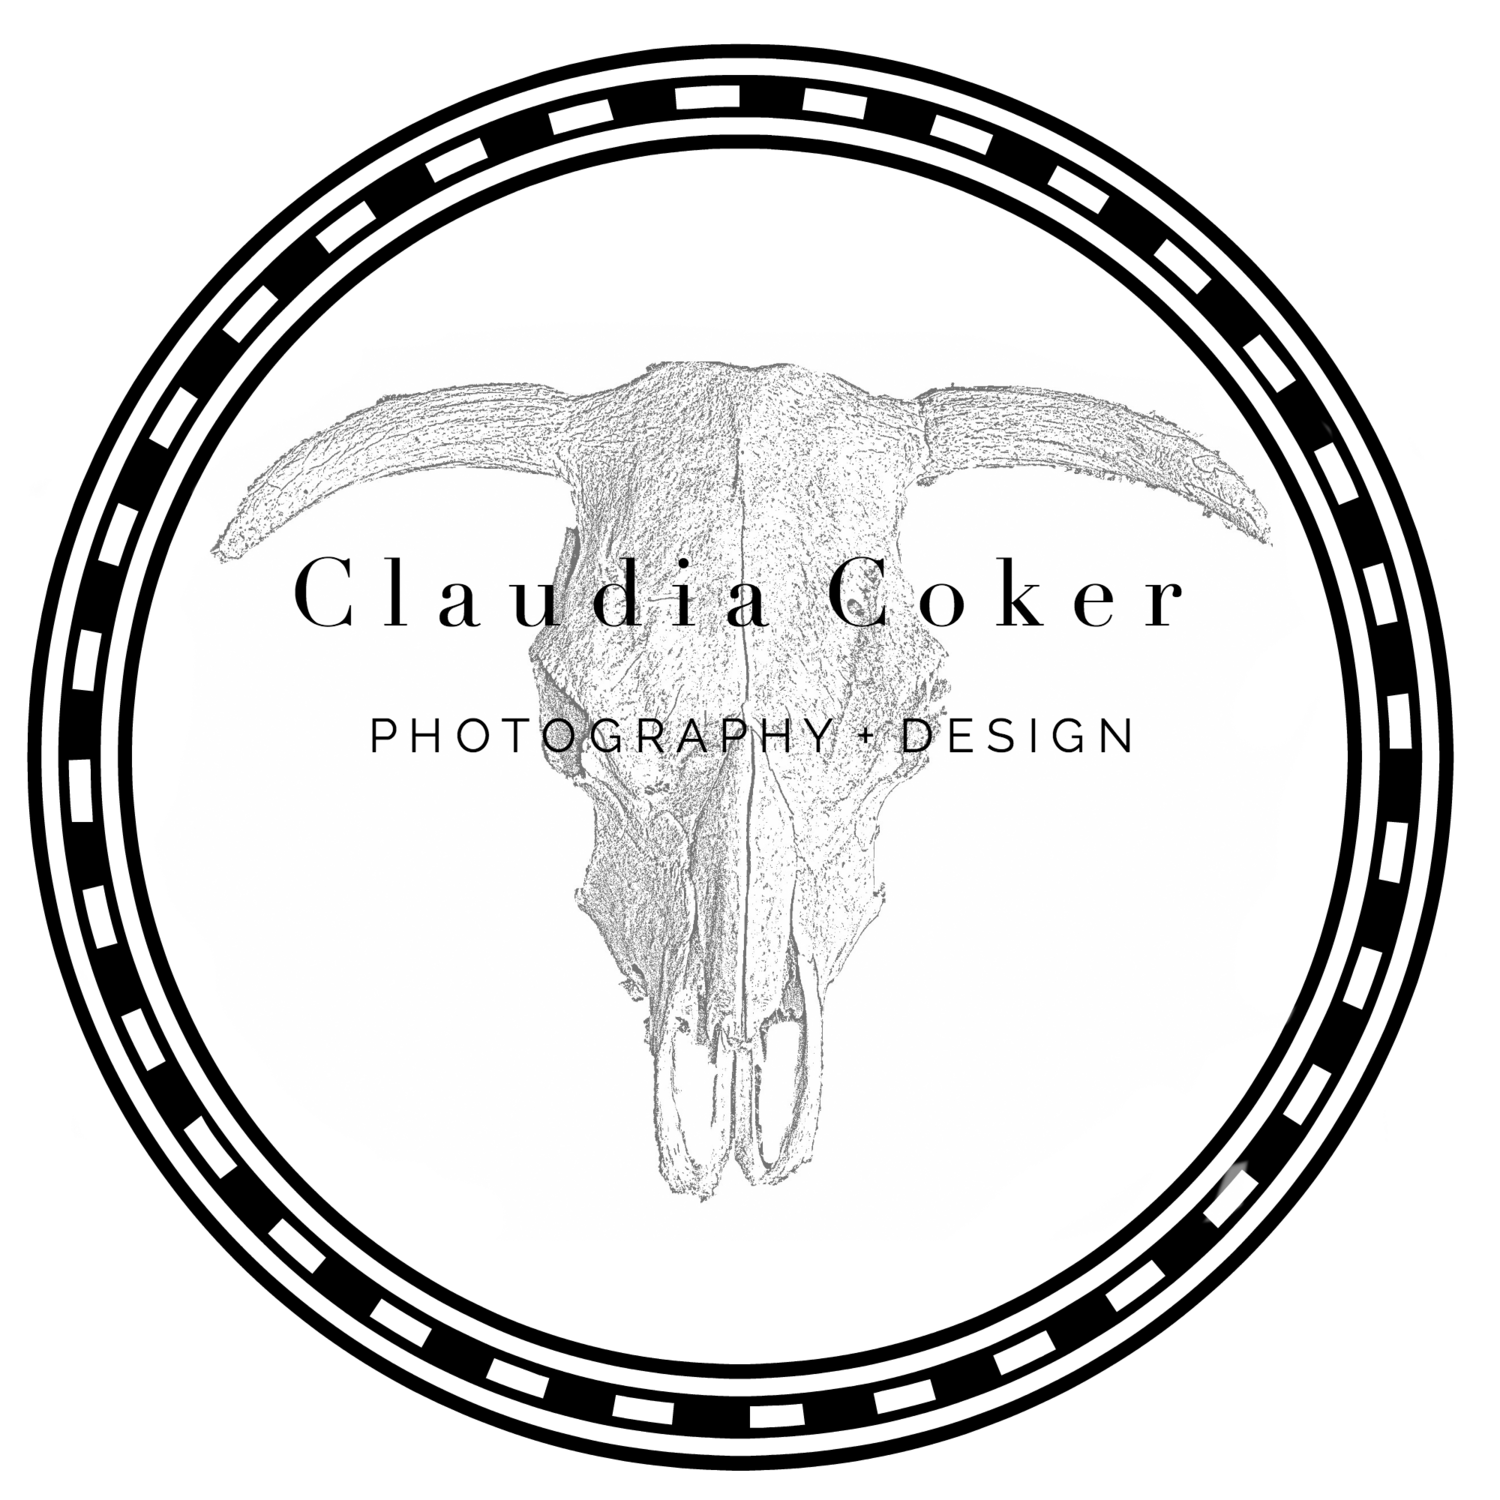 Claudia Coker Photography